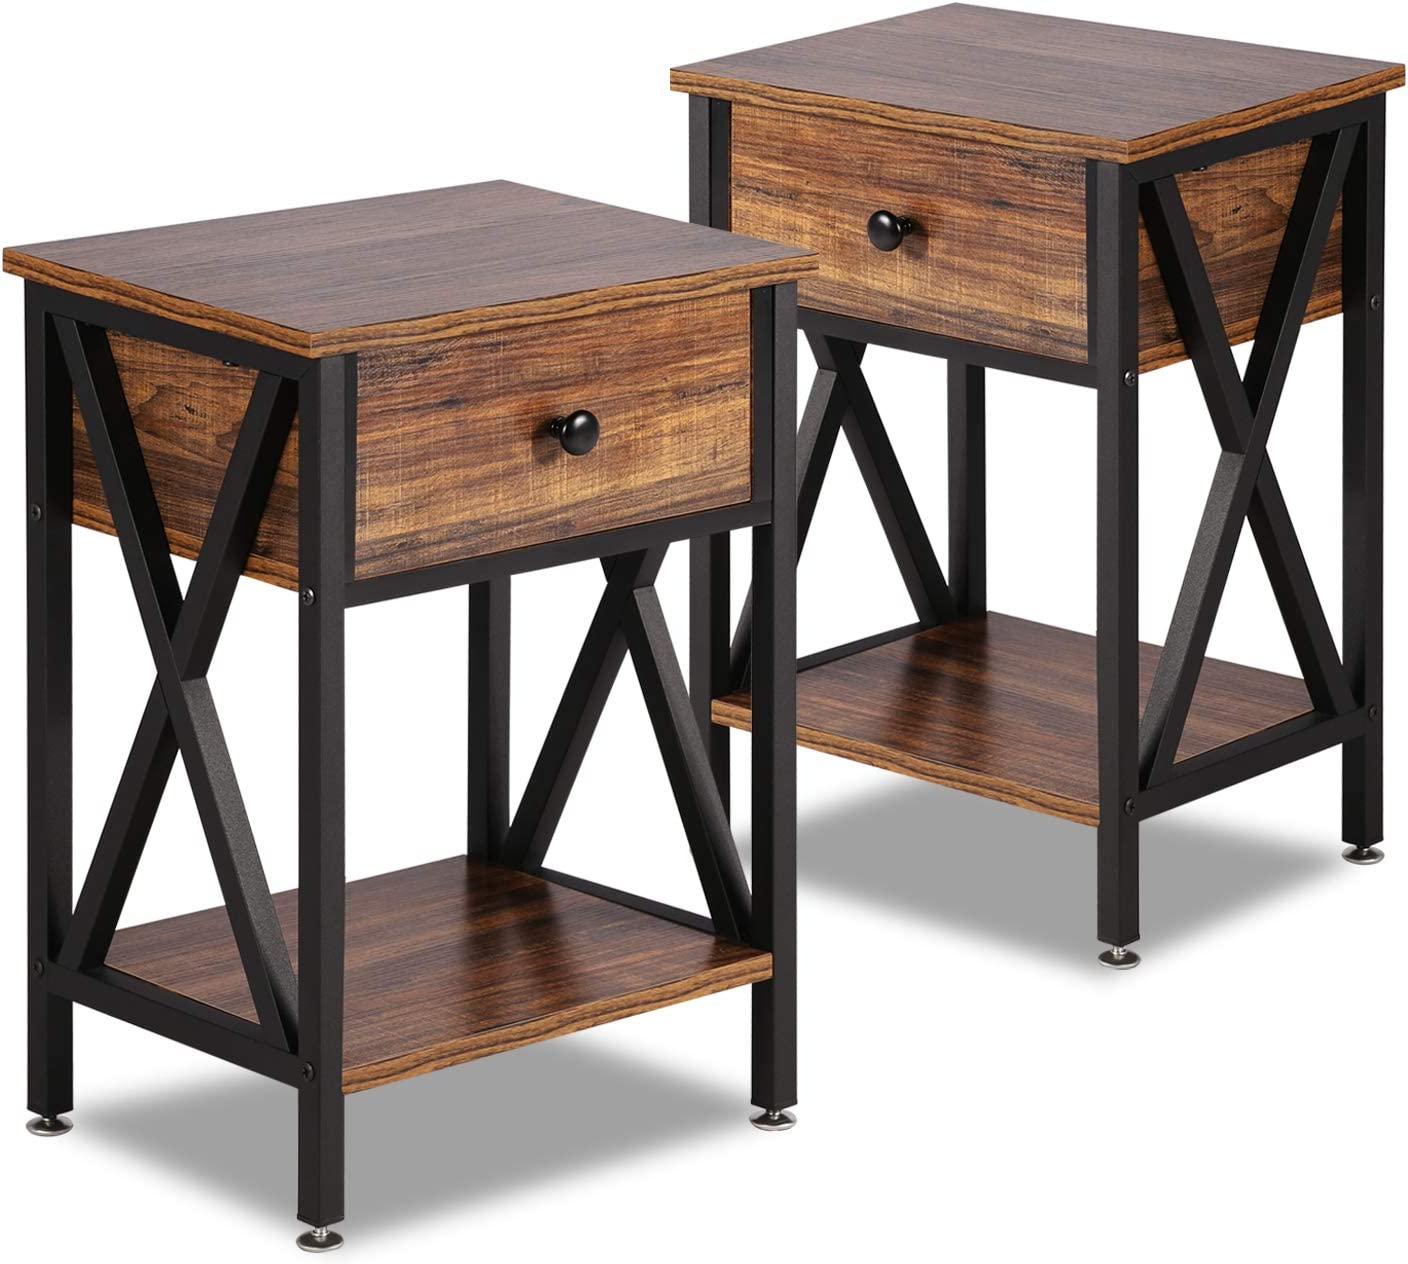 VECELO Modern Versatile Nightstands X-Design Side End Table Night Stand Storage Shelf with Bin Drawer for Living Room Bedroom, Set of 2 (Brown)